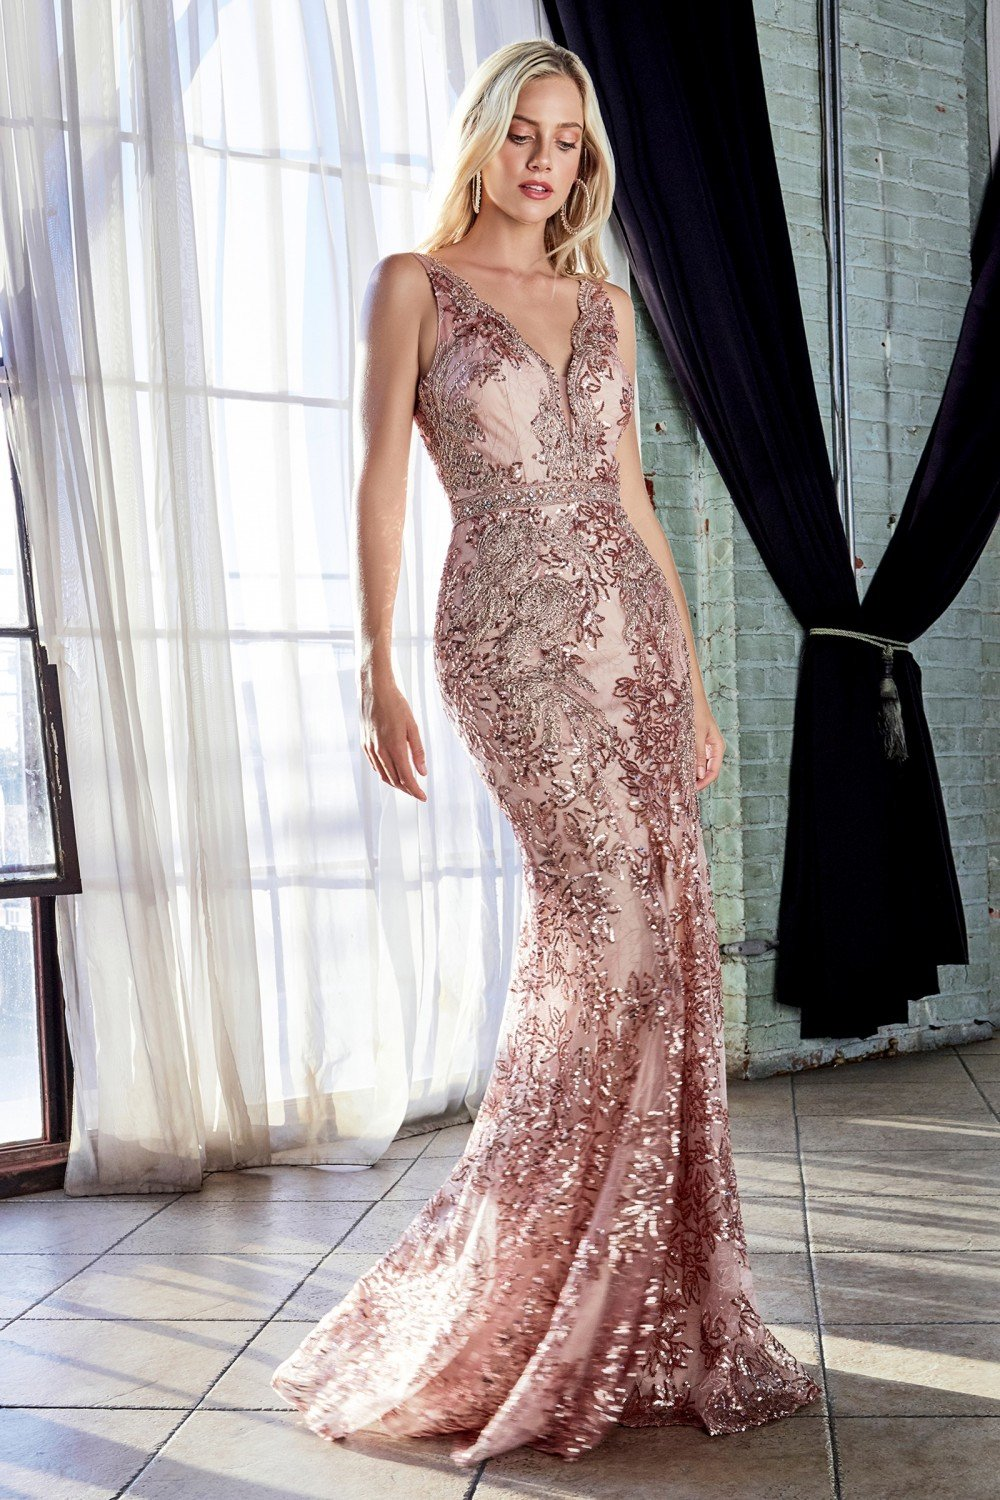 Cinderella Divine - HT062 Fitted Lace Sequined V-neck Trumpet Silhouette Gown In Pink and Gold